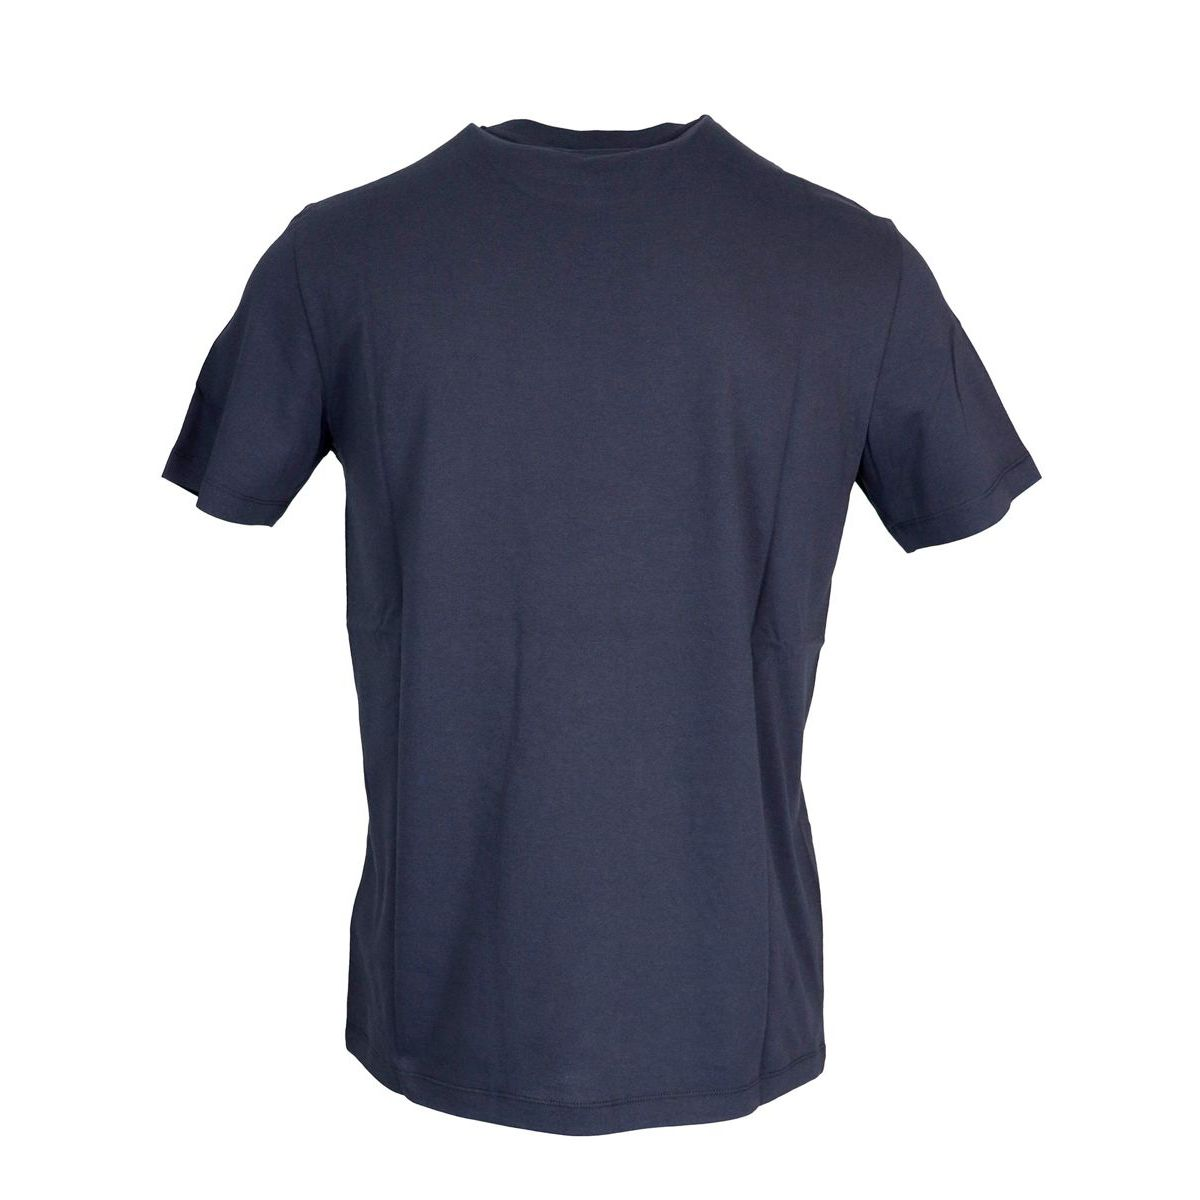 Logo print cotton t-shirt on the front Navy Emporio Armani